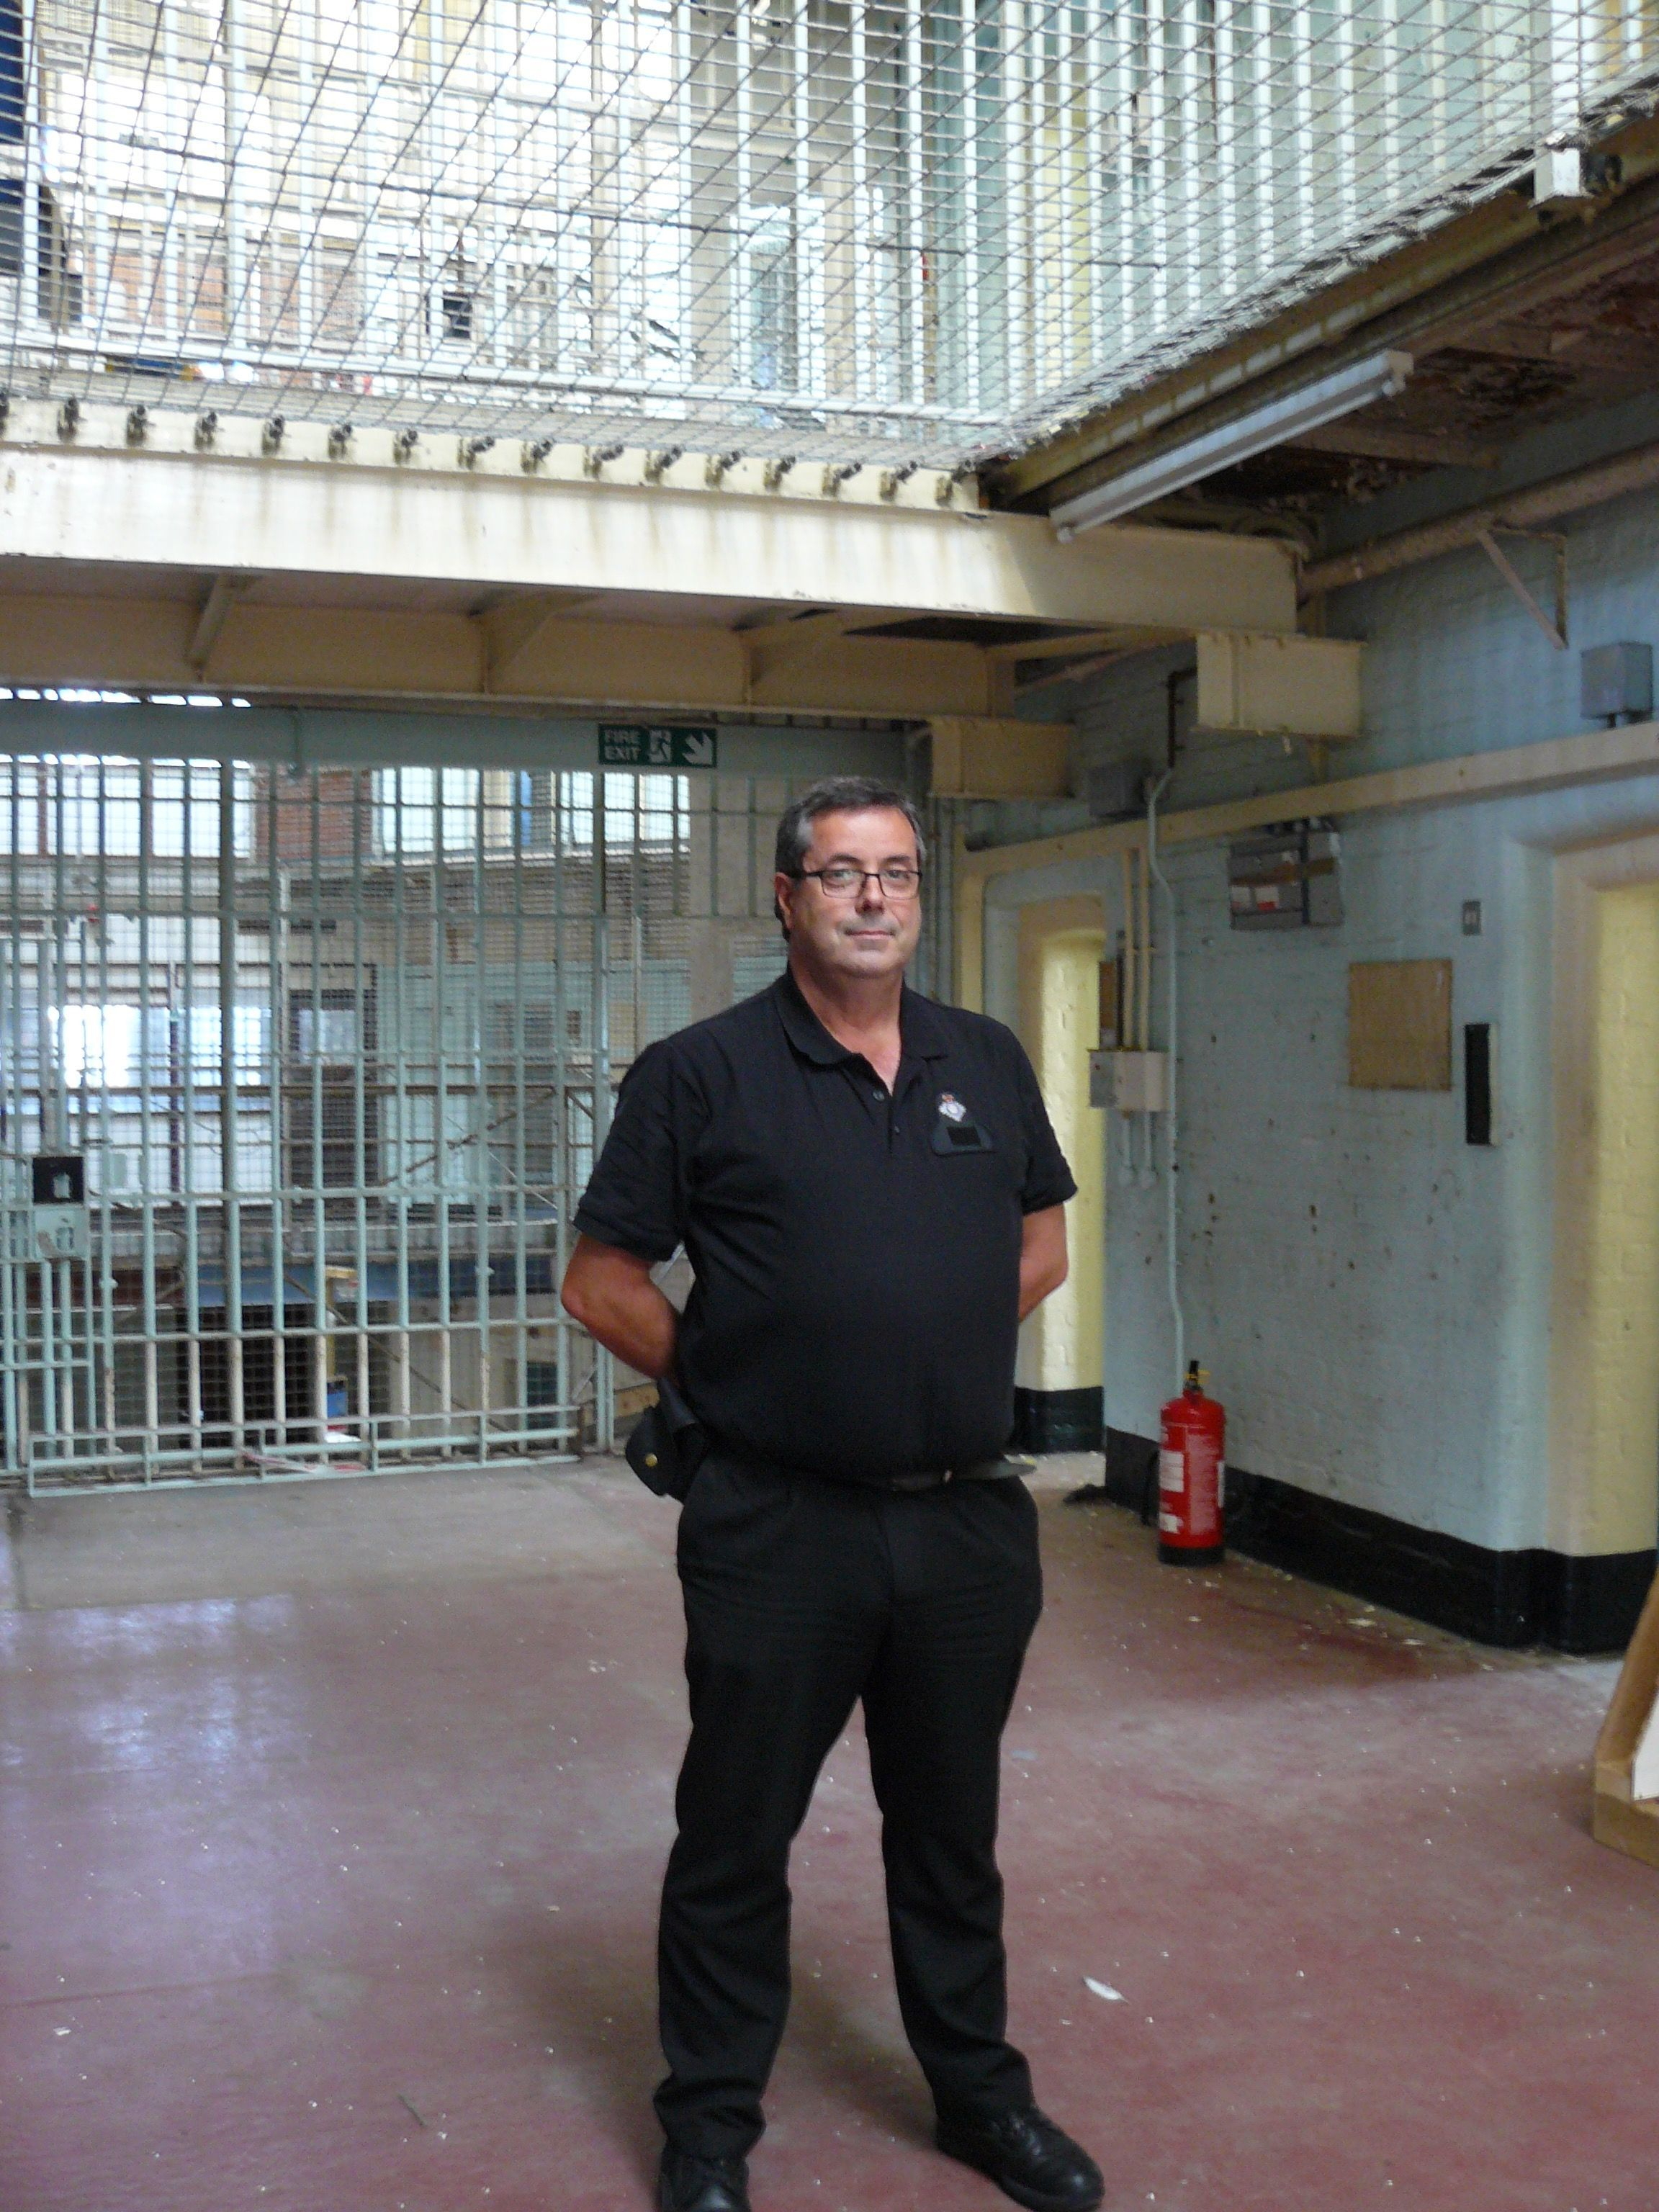 Dorchester Prison tour and hokey cokey in street for Heritage Open Days